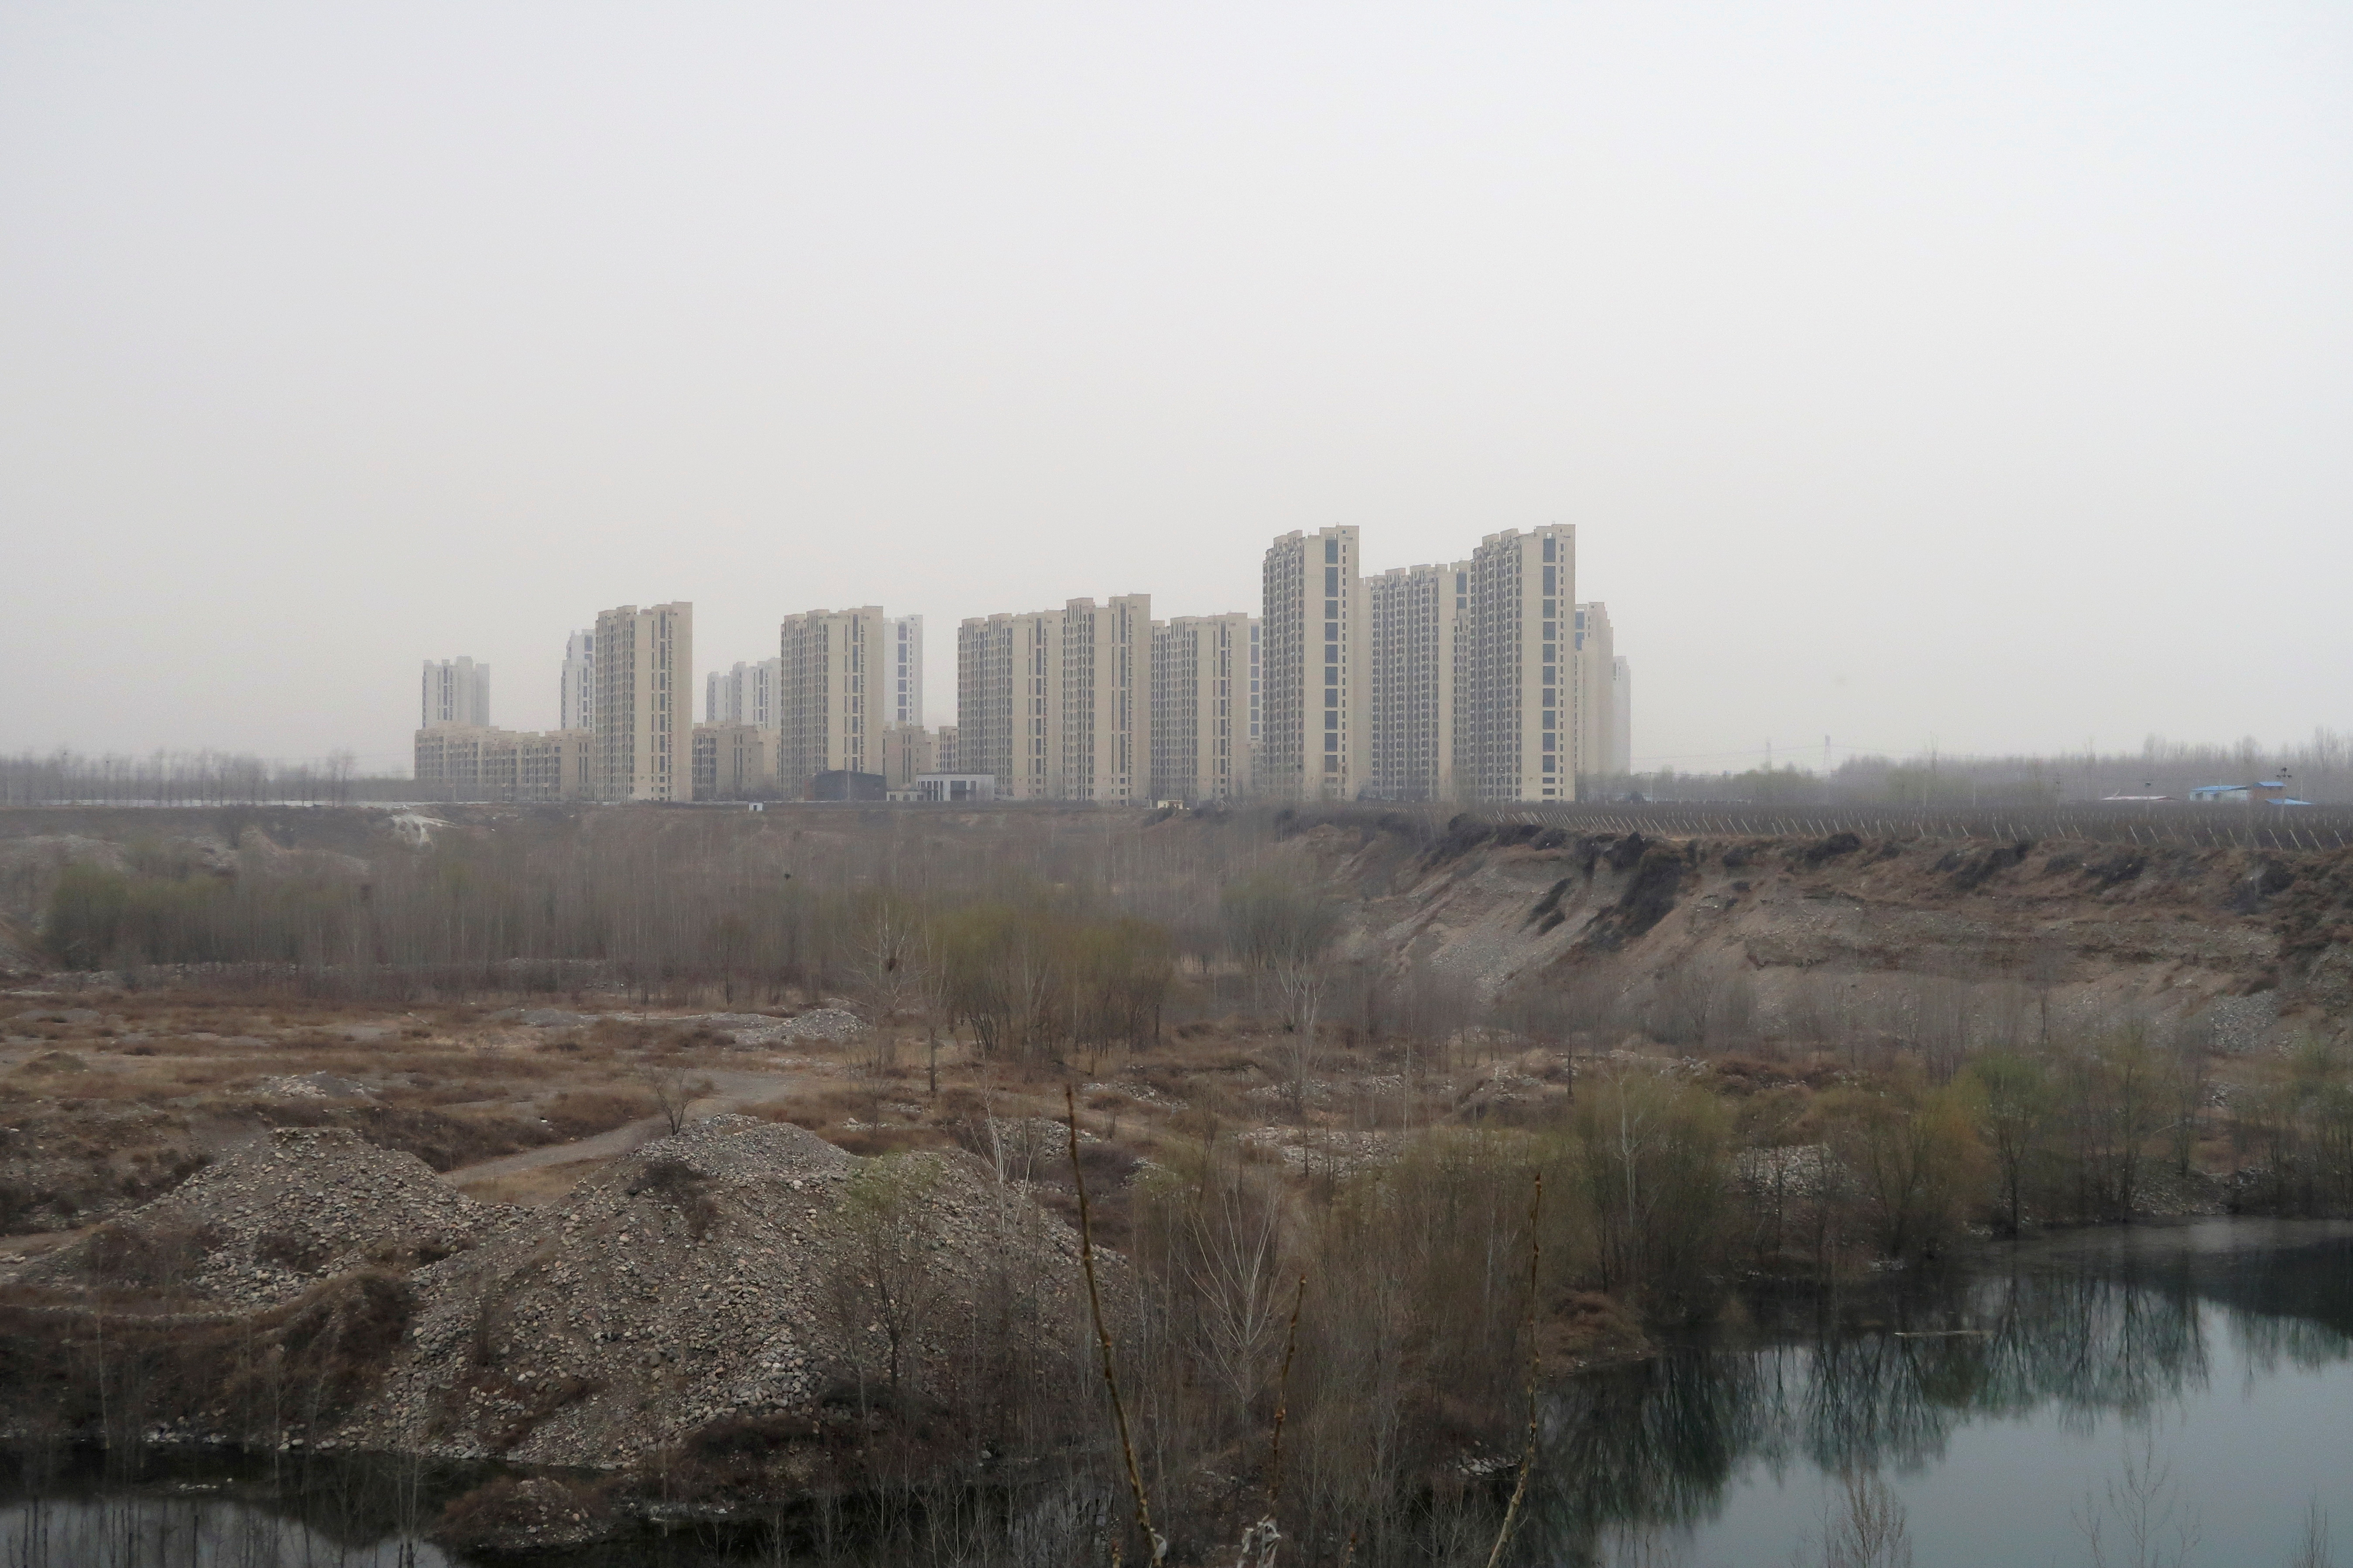 The Taoyuan Xindu Kongquecheng apartment compound developed by China Fortune Land Development is seen in Zhuozhou, Hebei province, China March 19, 2021. Picture taken March 19, 2021. REUTERS/Lusha Zhang/File Photo